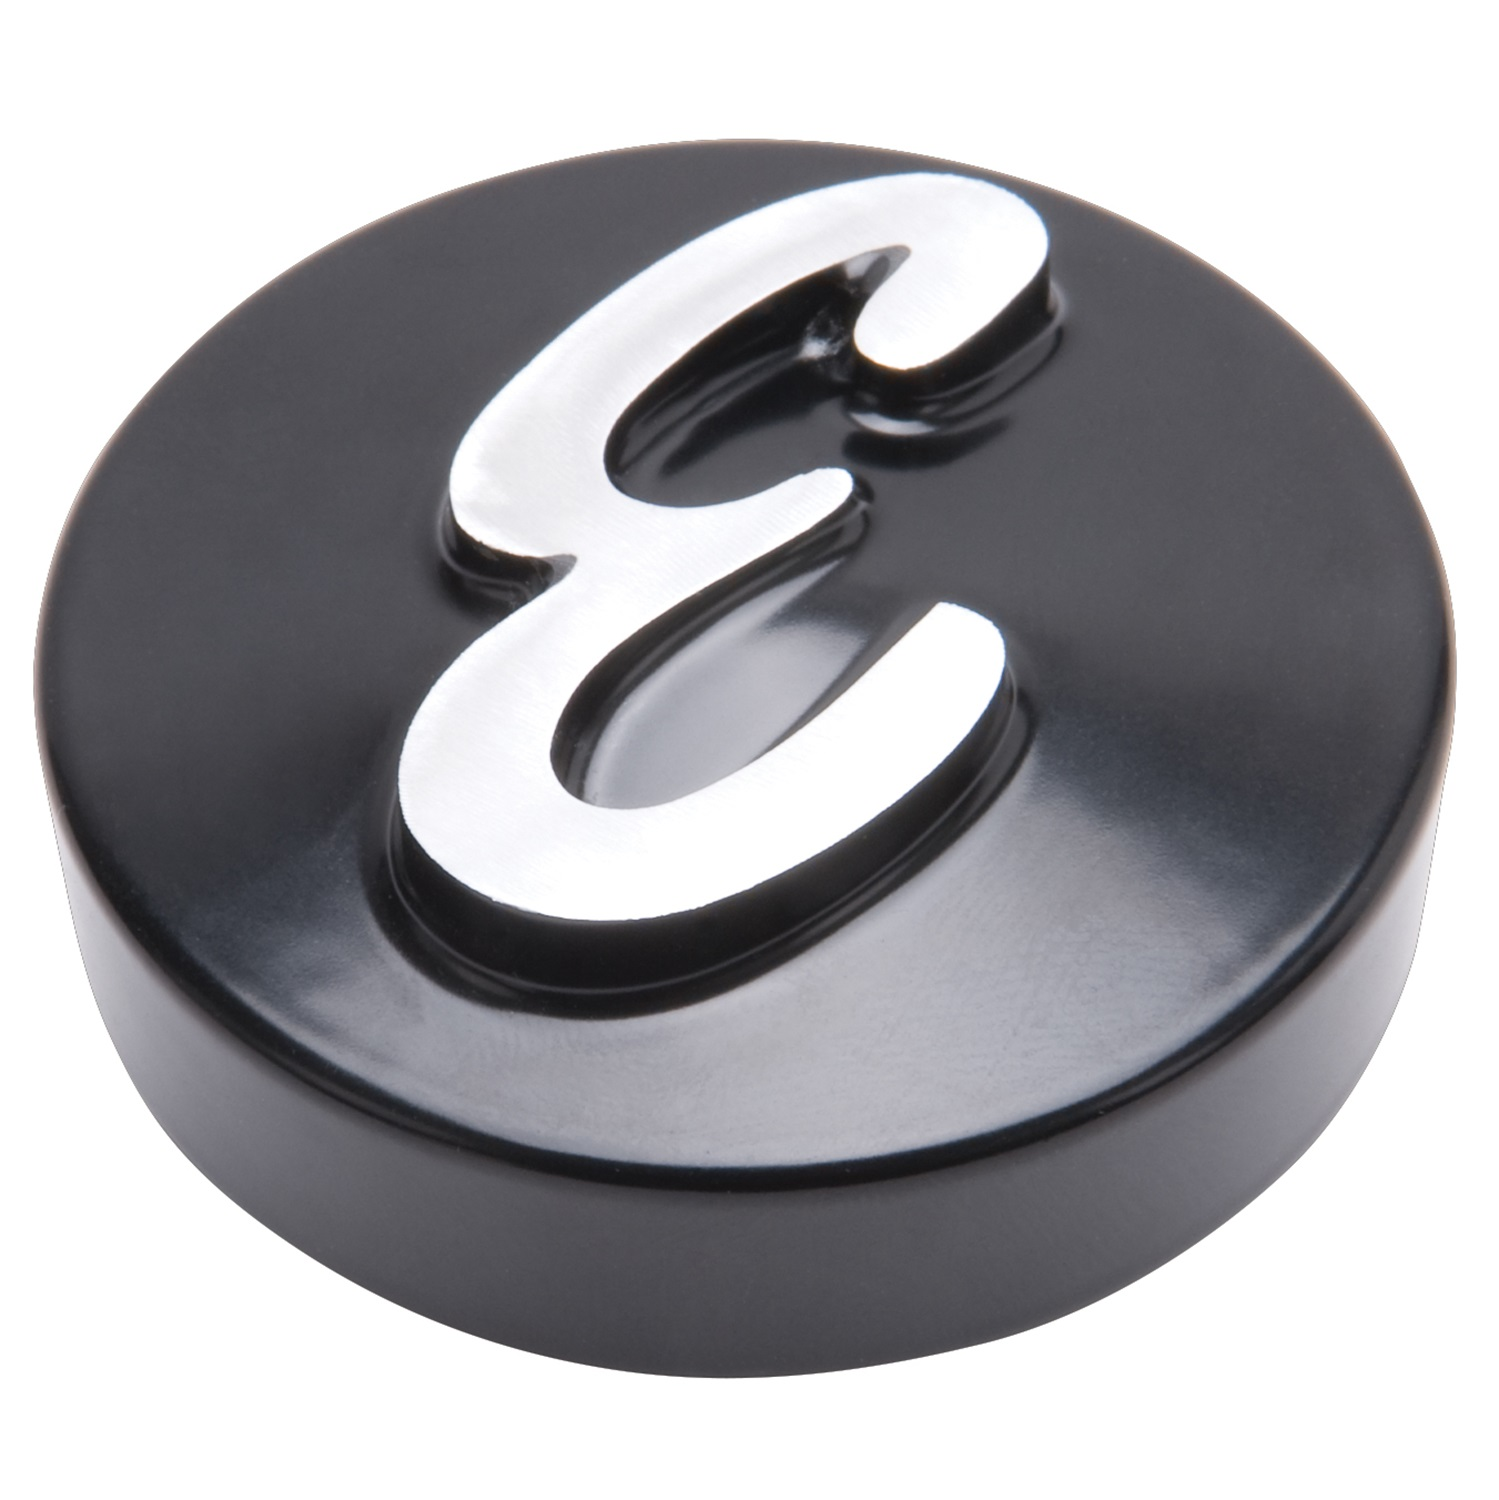 Air Cleaner Nut : Edelbrock elite series air cleaner nut installation